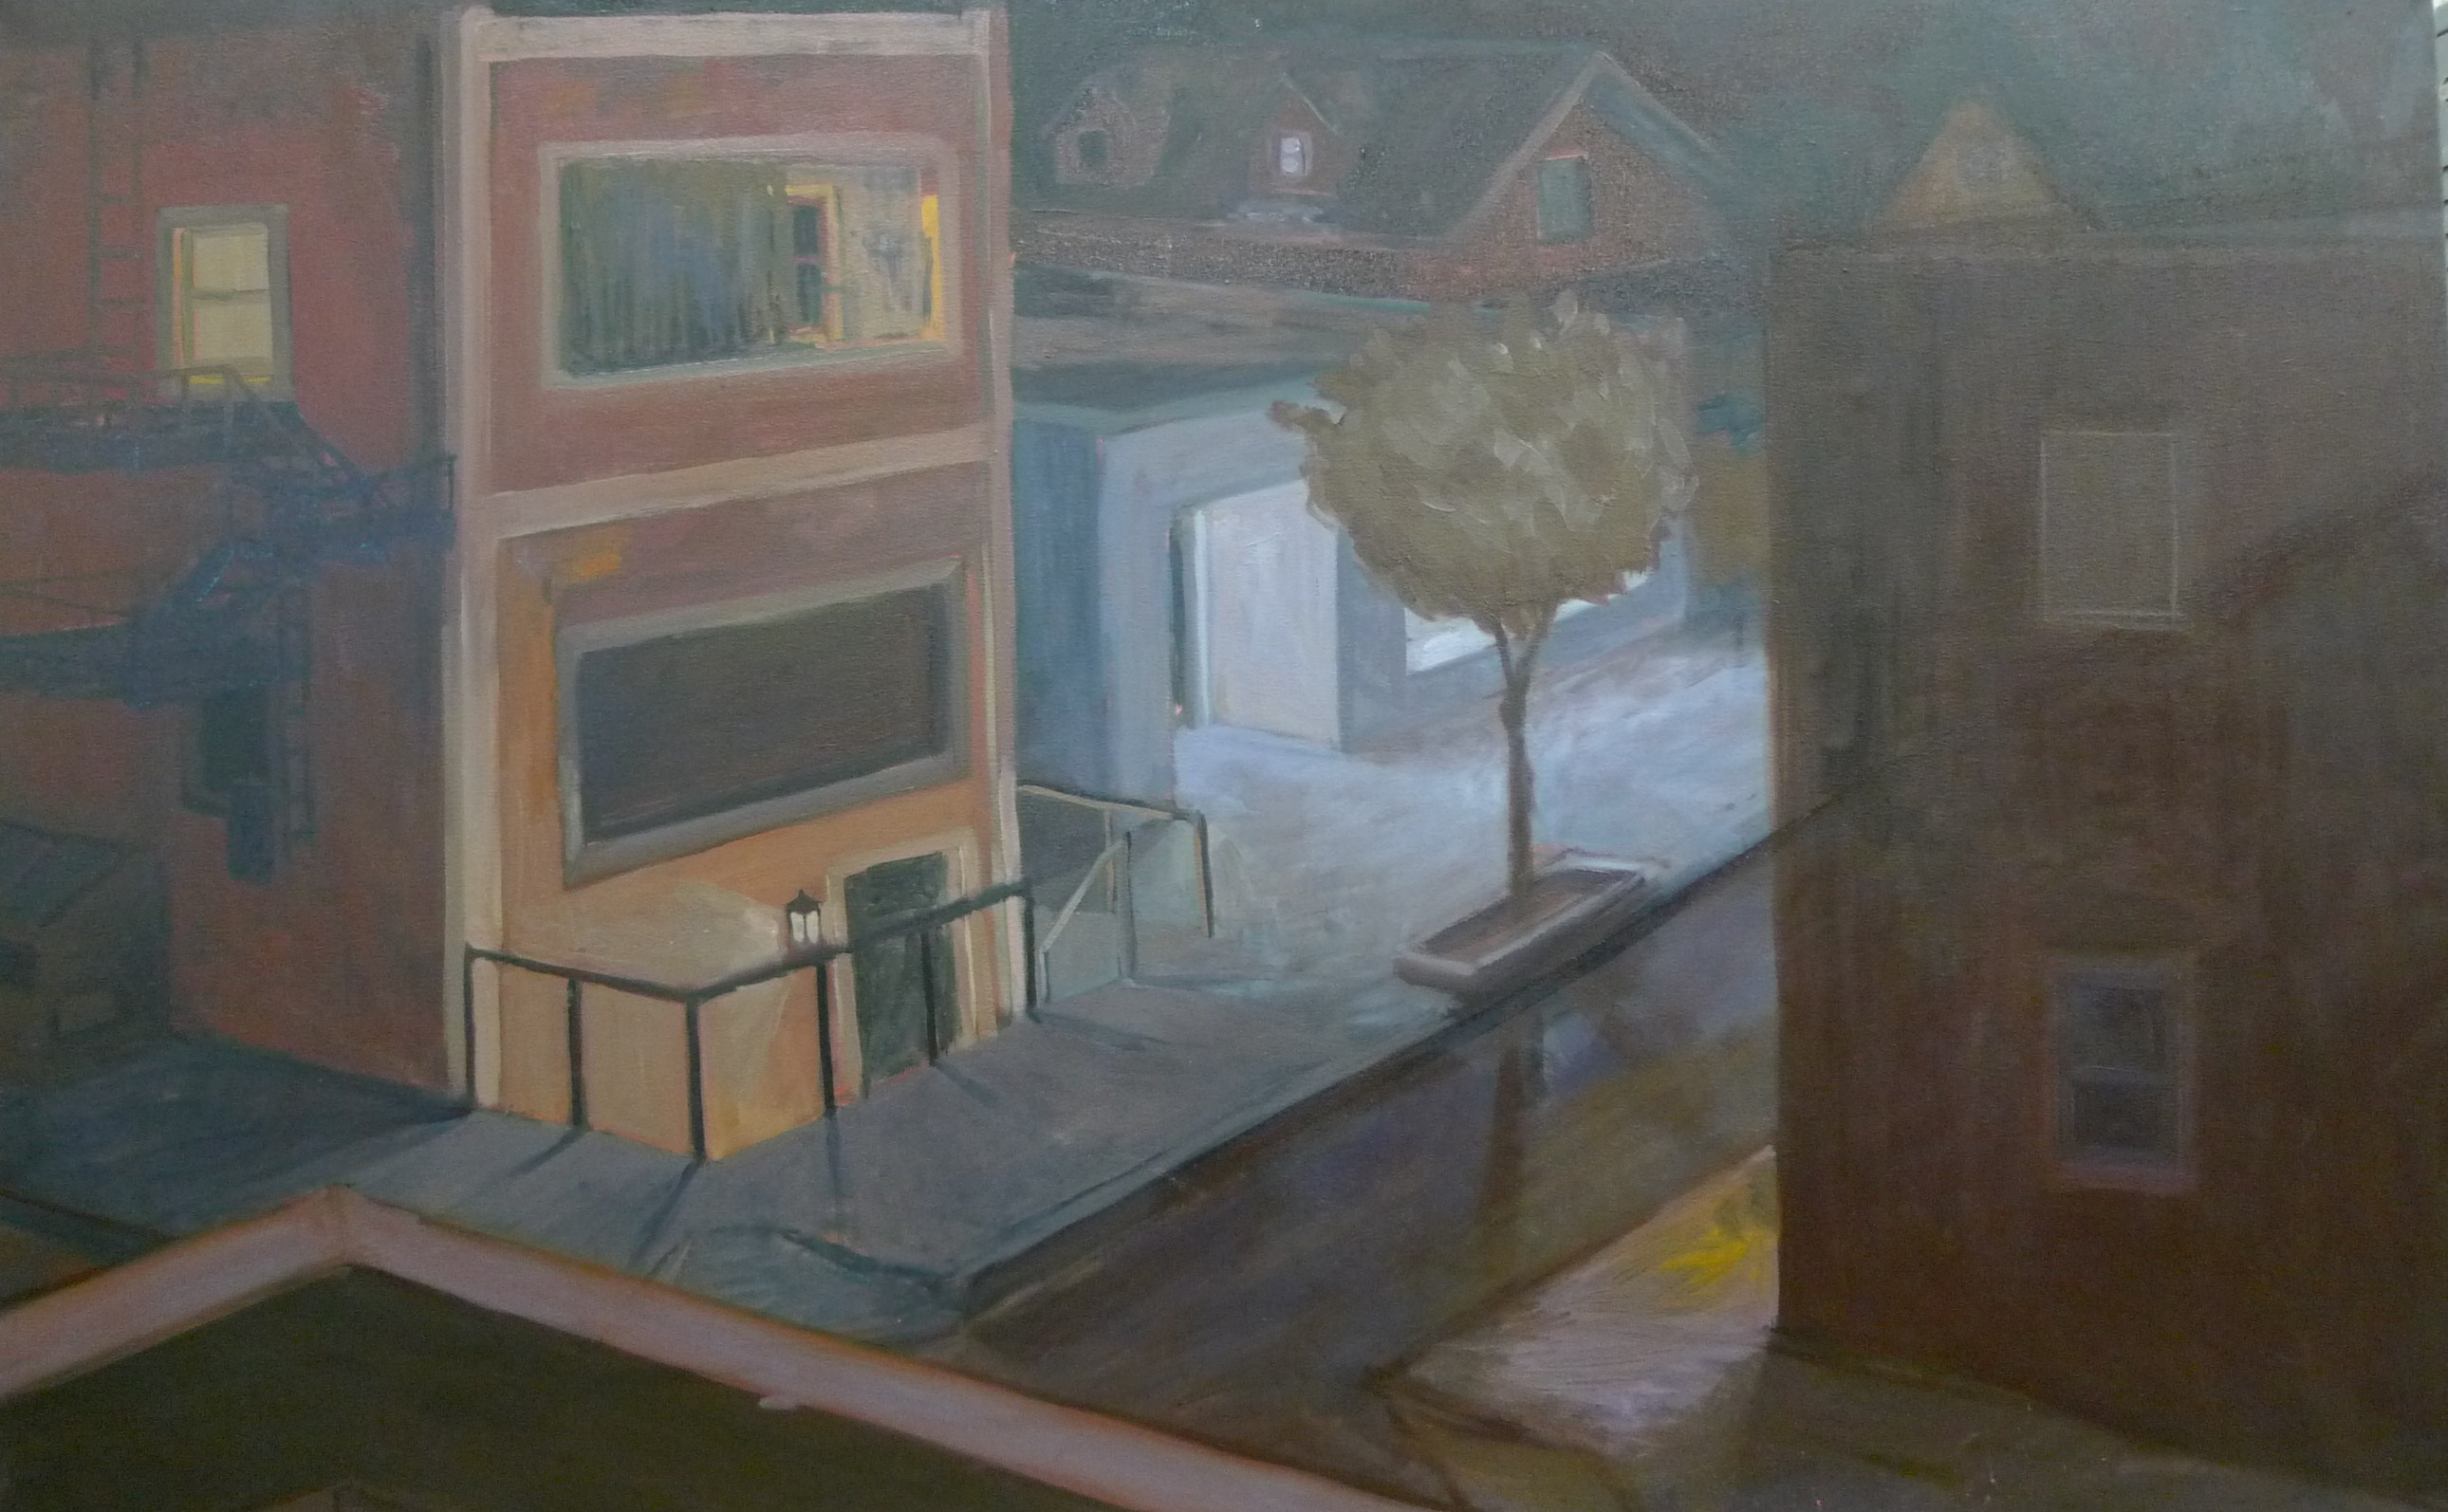 zj.2009.oil on canvas.32x46.JPG